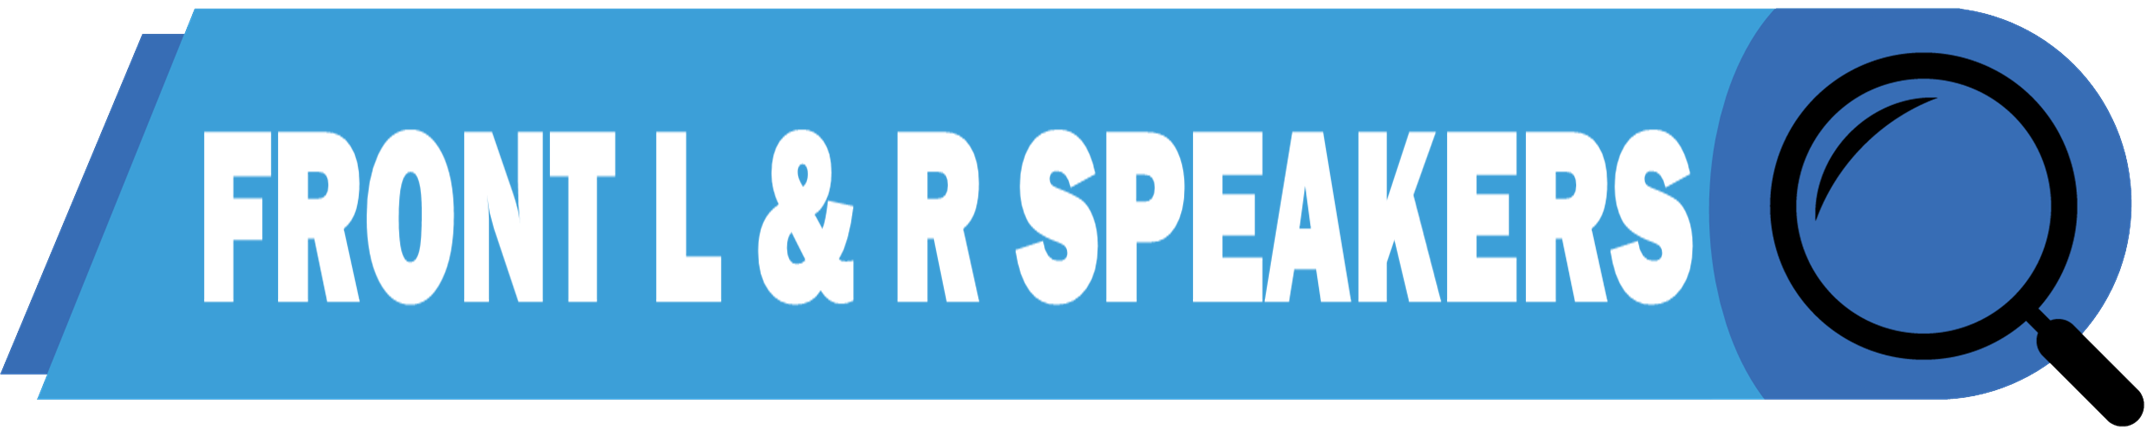 fron-speakers-click-bar-b.png